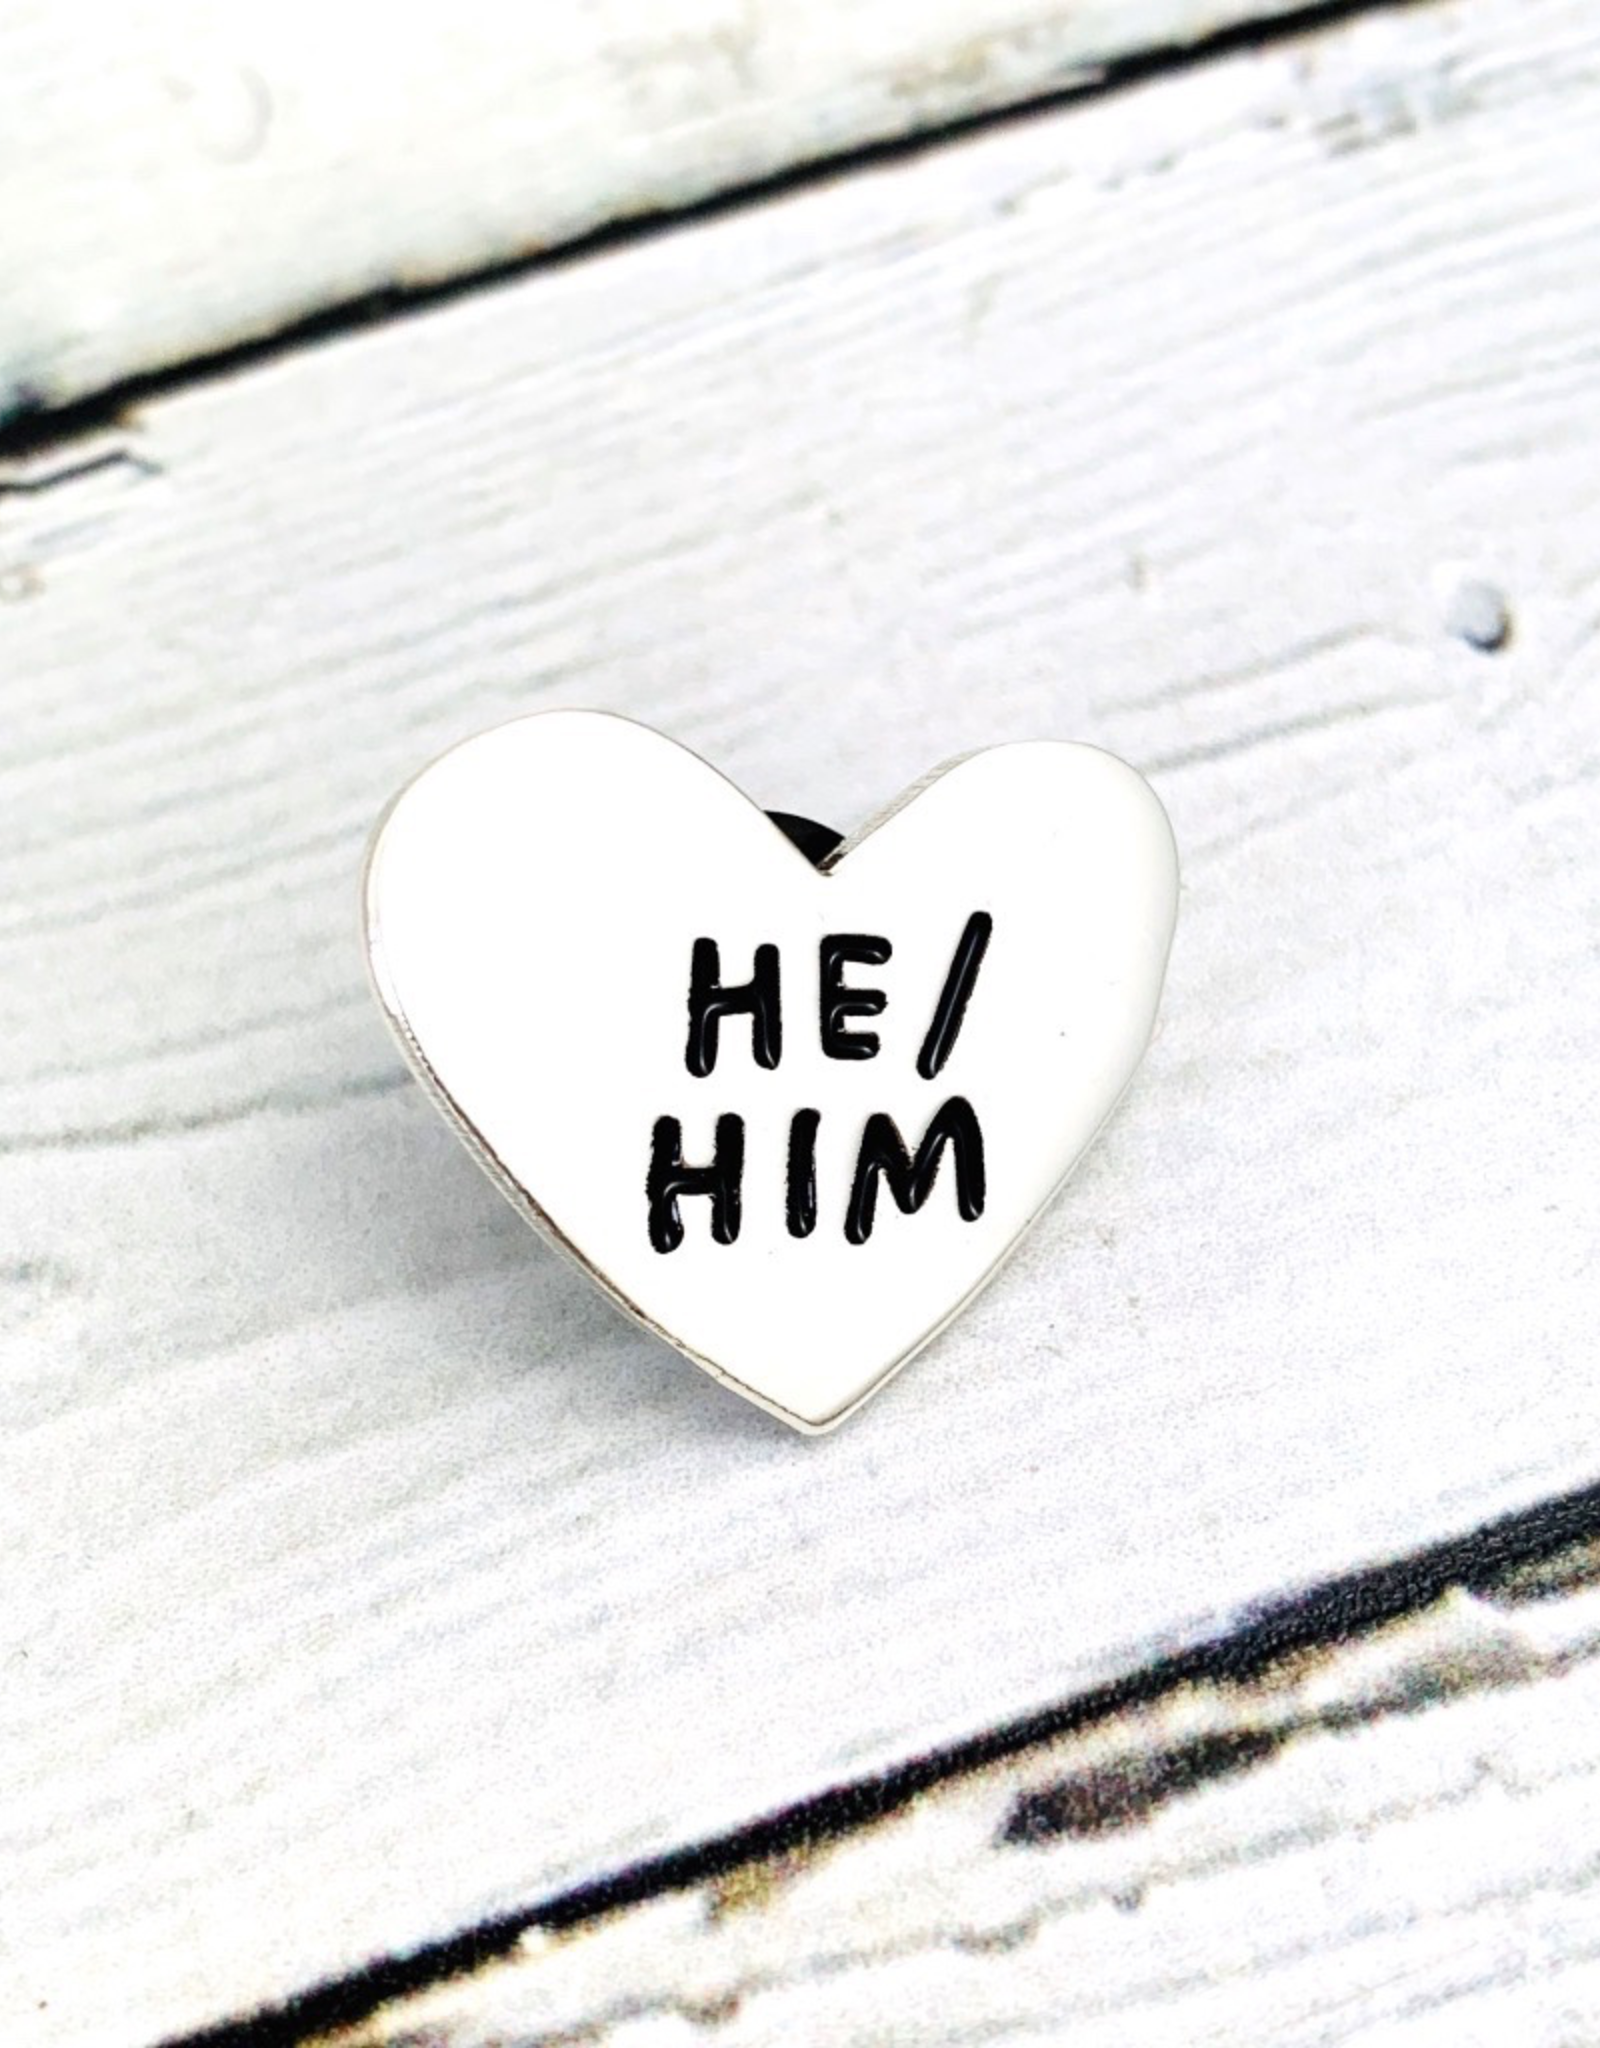 He/Him Pronoun Heart Pin